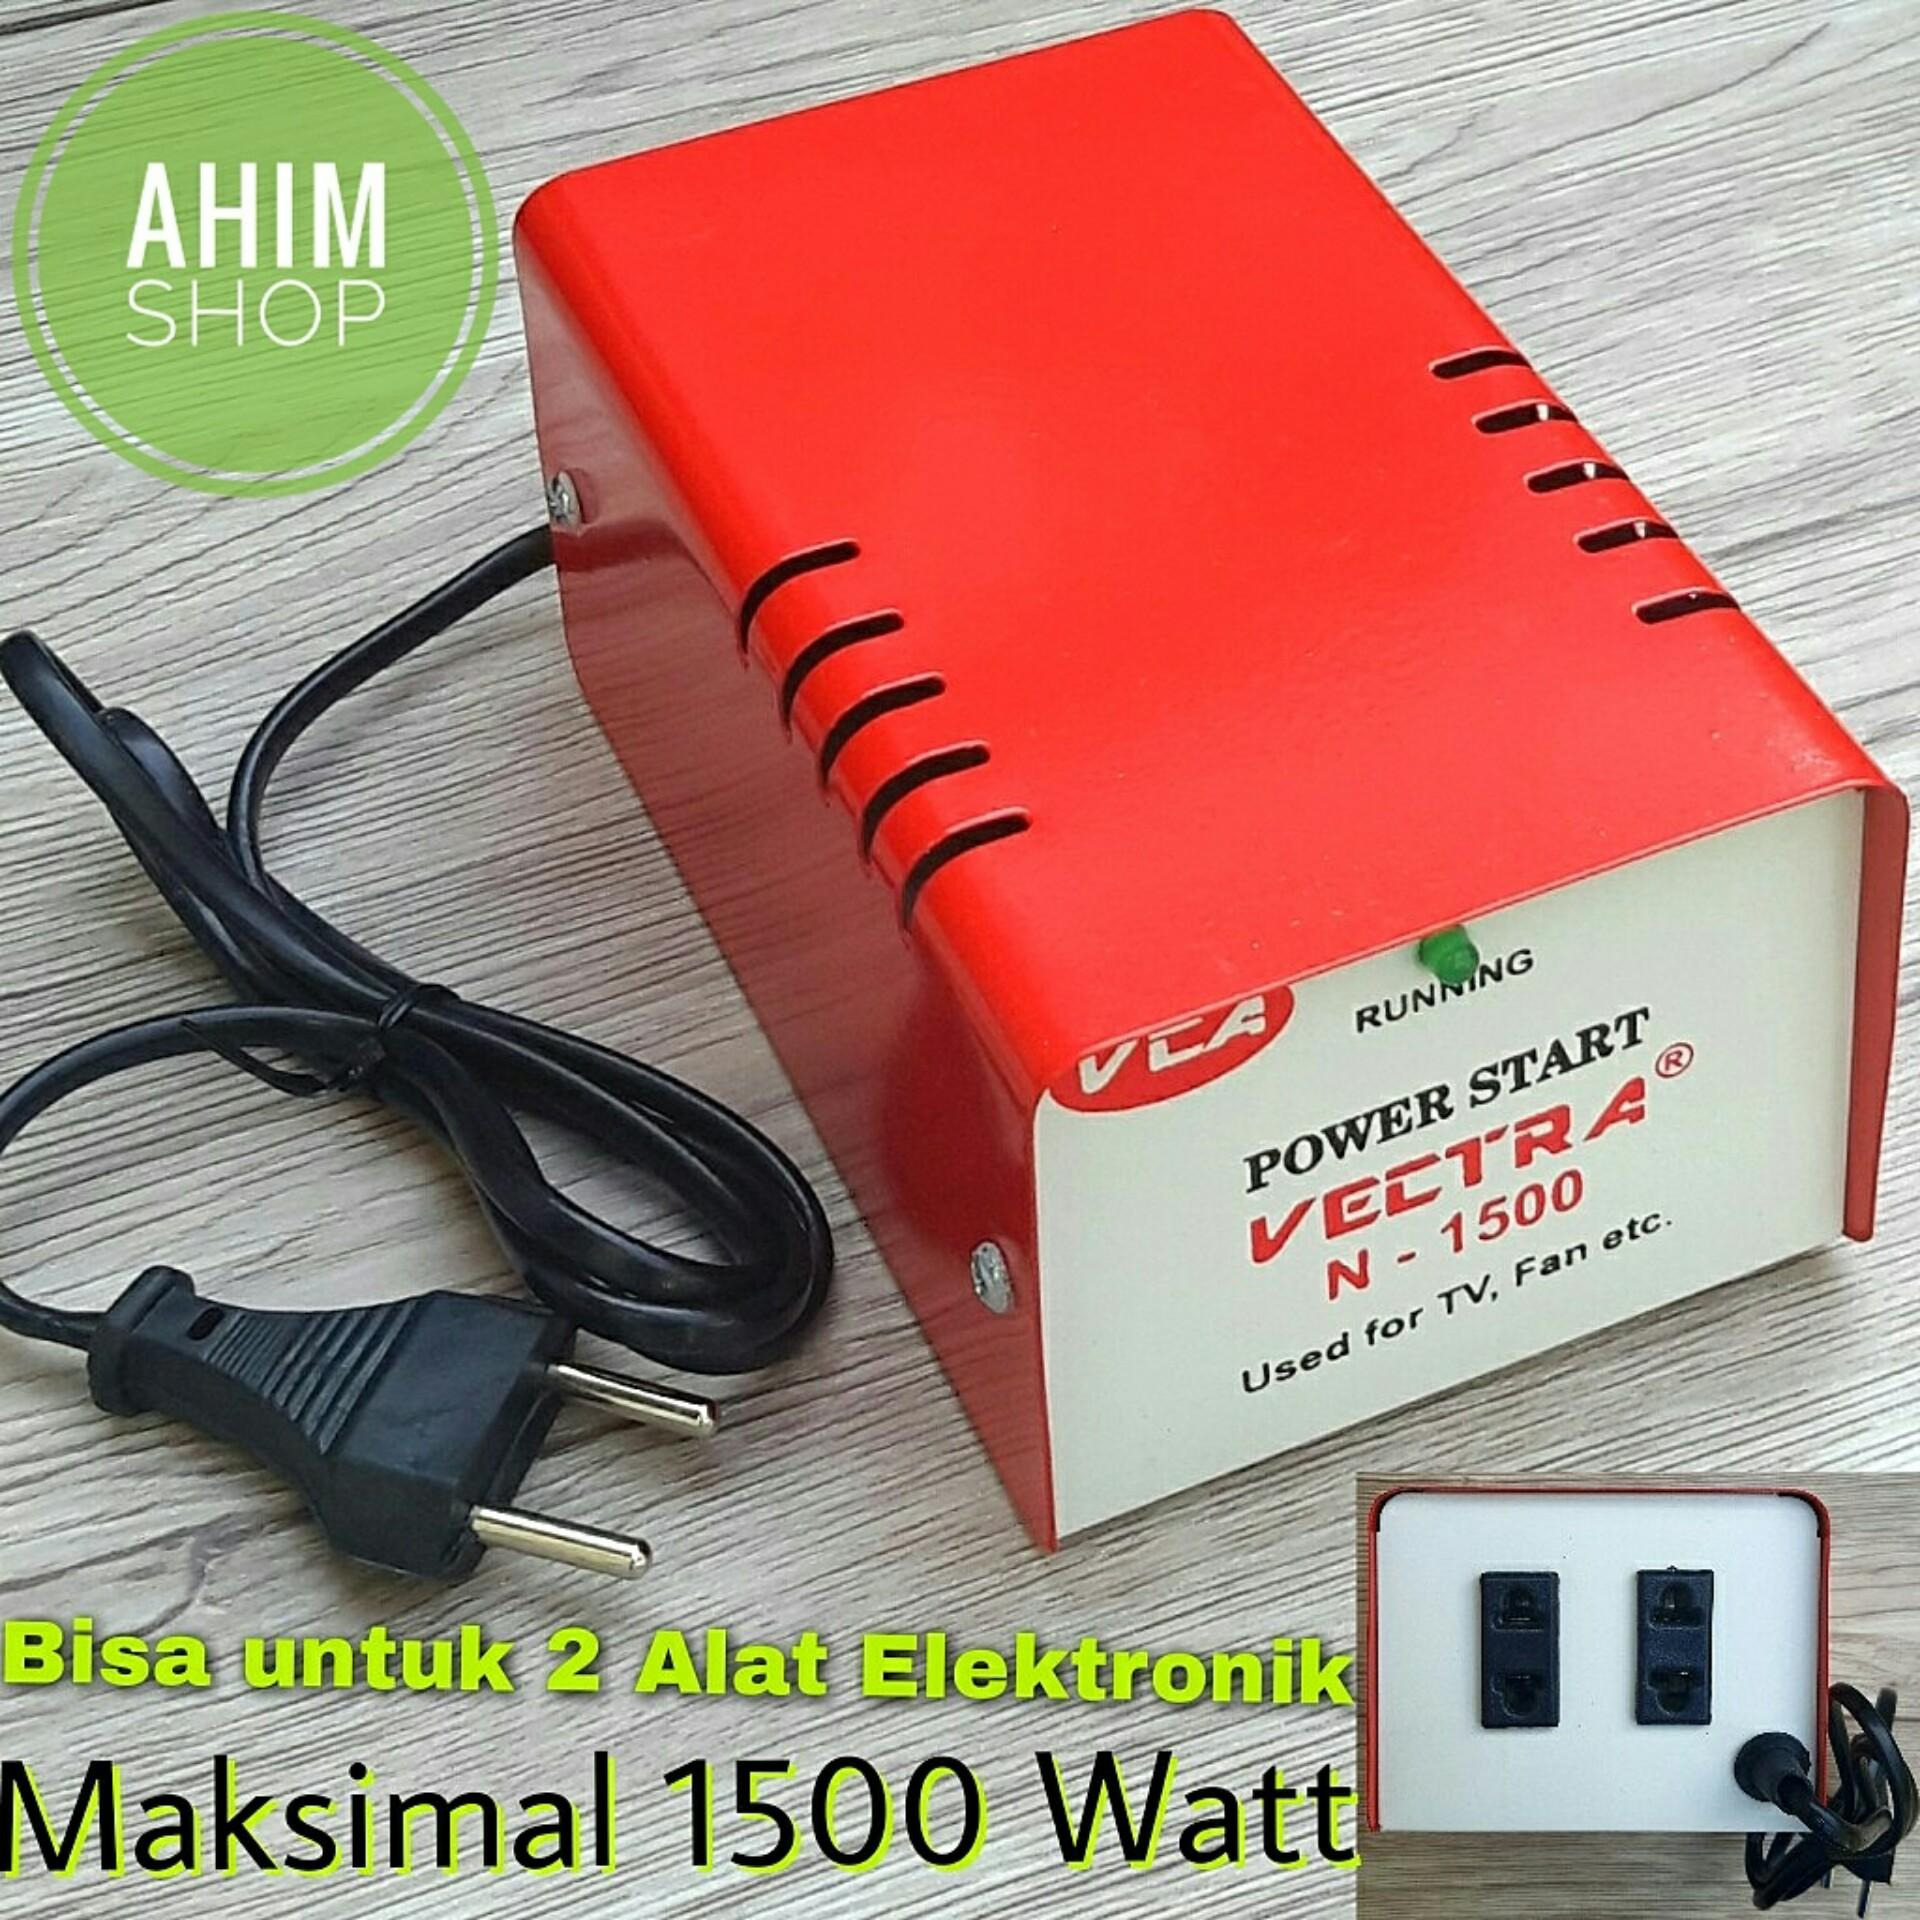 VECTRA® Auto Start Dua Alat Elektronik Max 1500 W Body Besi Automatic Power Starting Penghemat